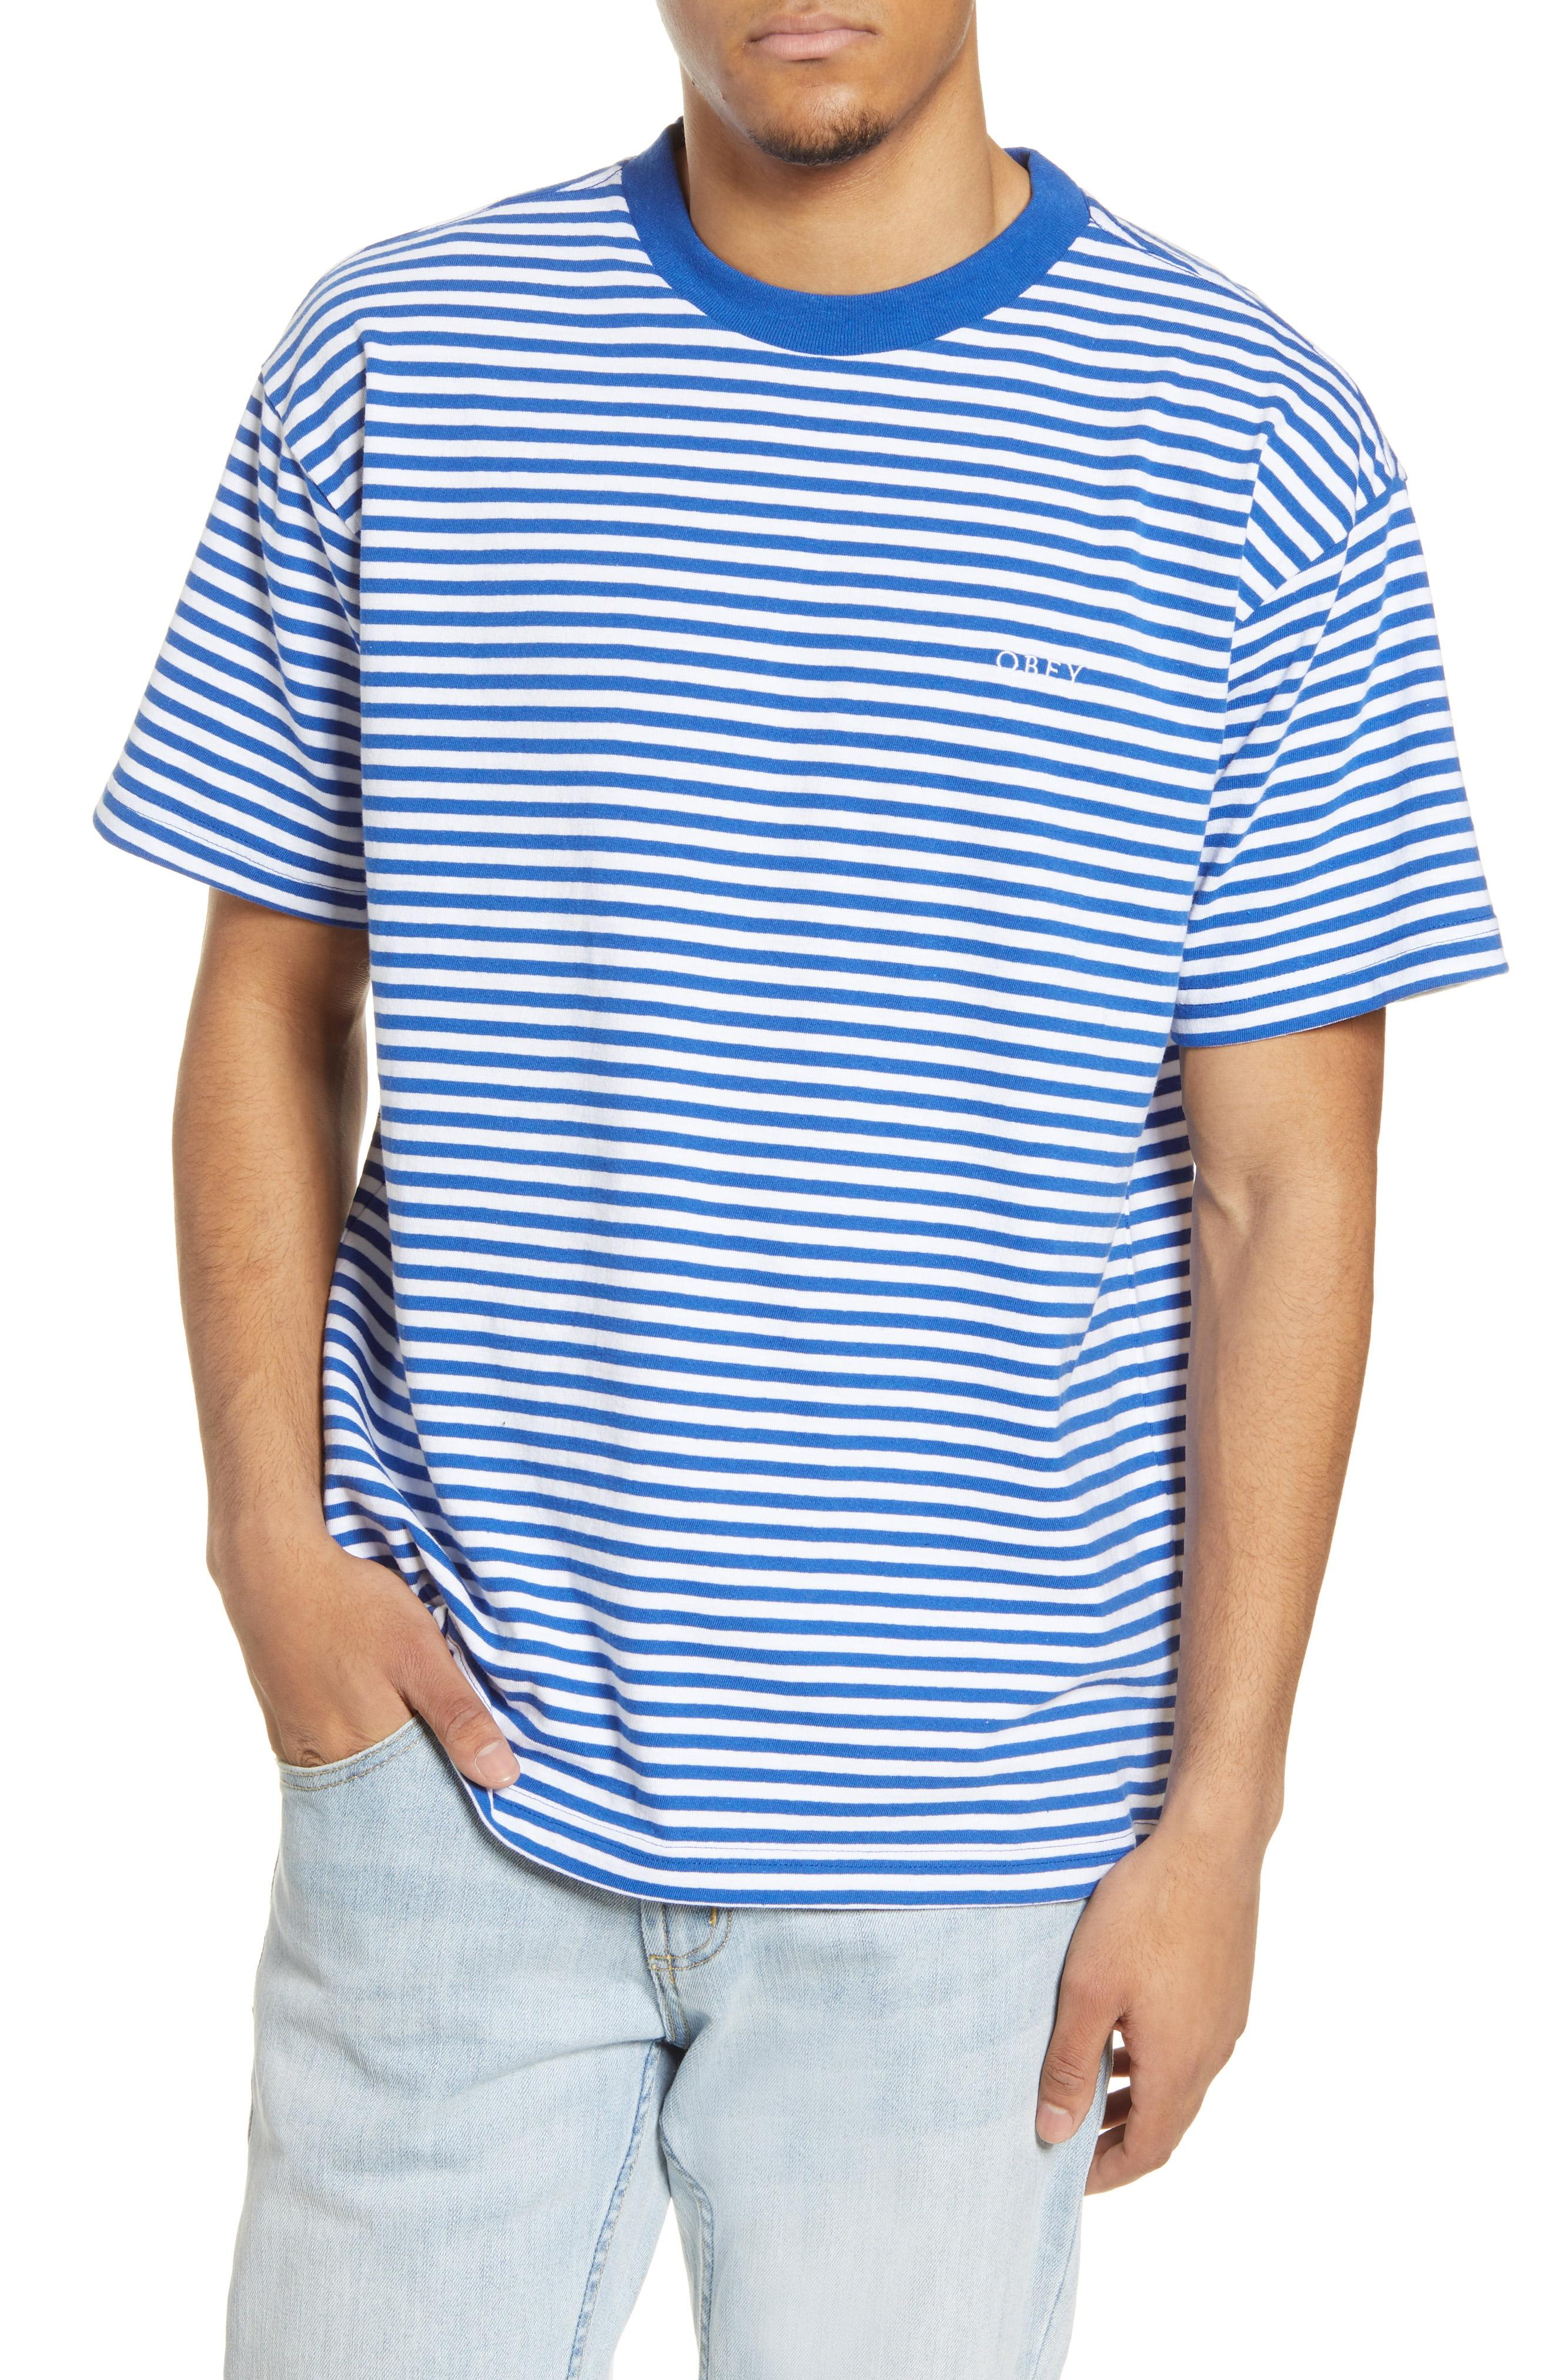 XiaoShop Mens Short Sleeve Solid-Colored Summer Business Casual Polo Shirt